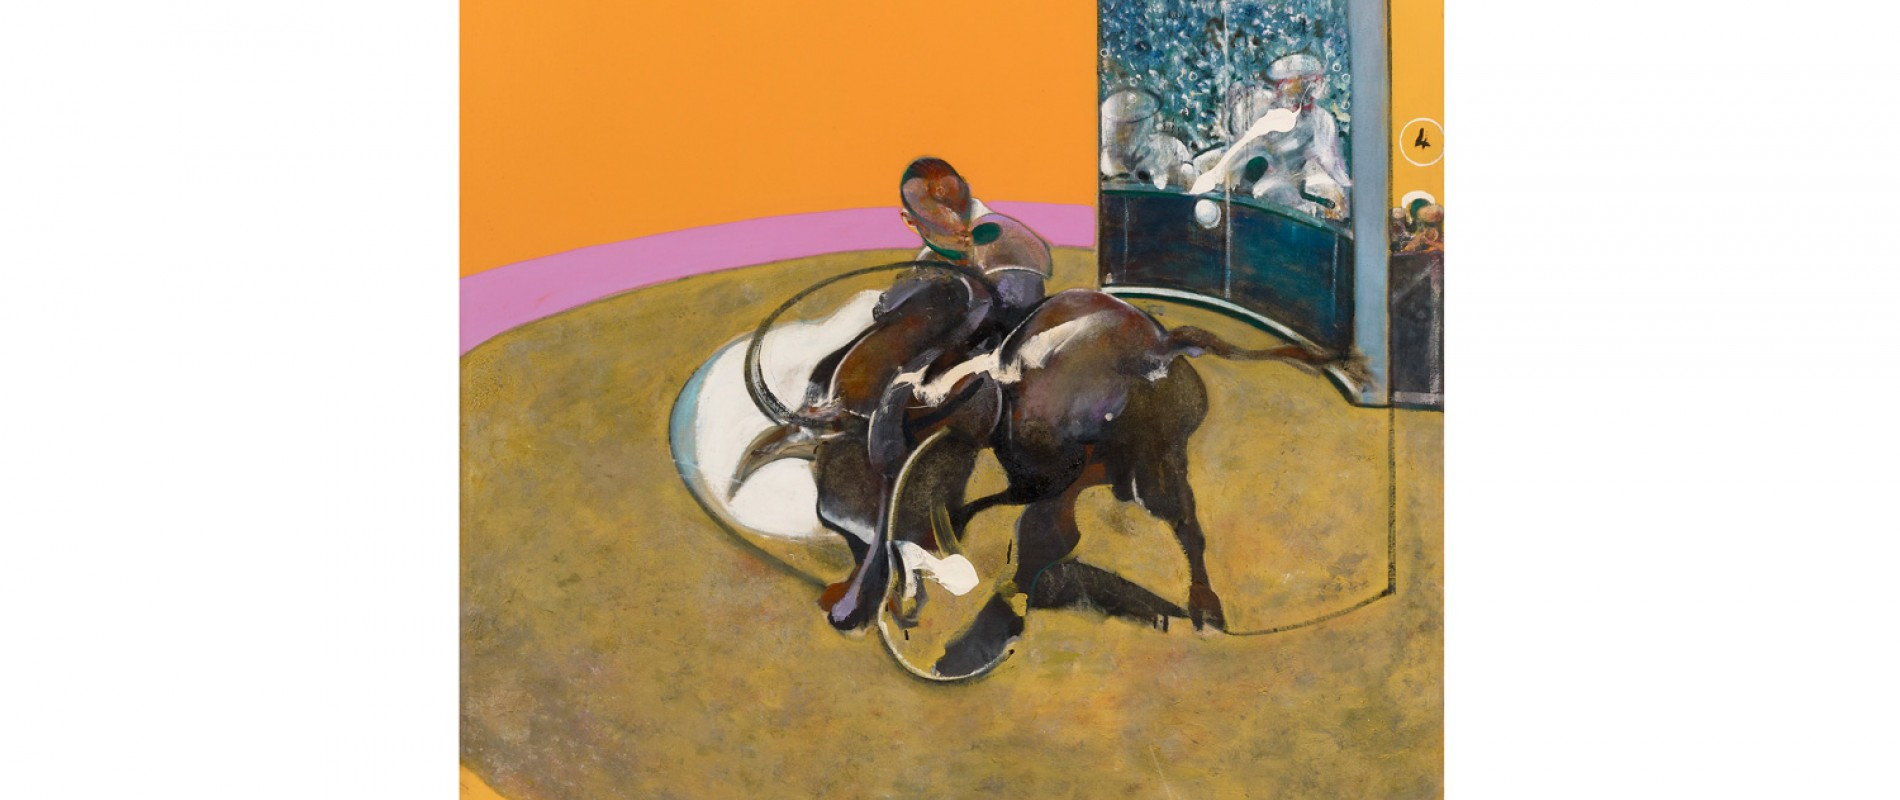 FRANCIS BACON Study for Bullfight No. 1, 1969 Oil on canvas, 197.7 x 147.8 cm Private collection © The Estate of Francis Bacon. All rights reserved, DACS/Artimage 2020.  Ph: Prudence Cuming Associates Ltd